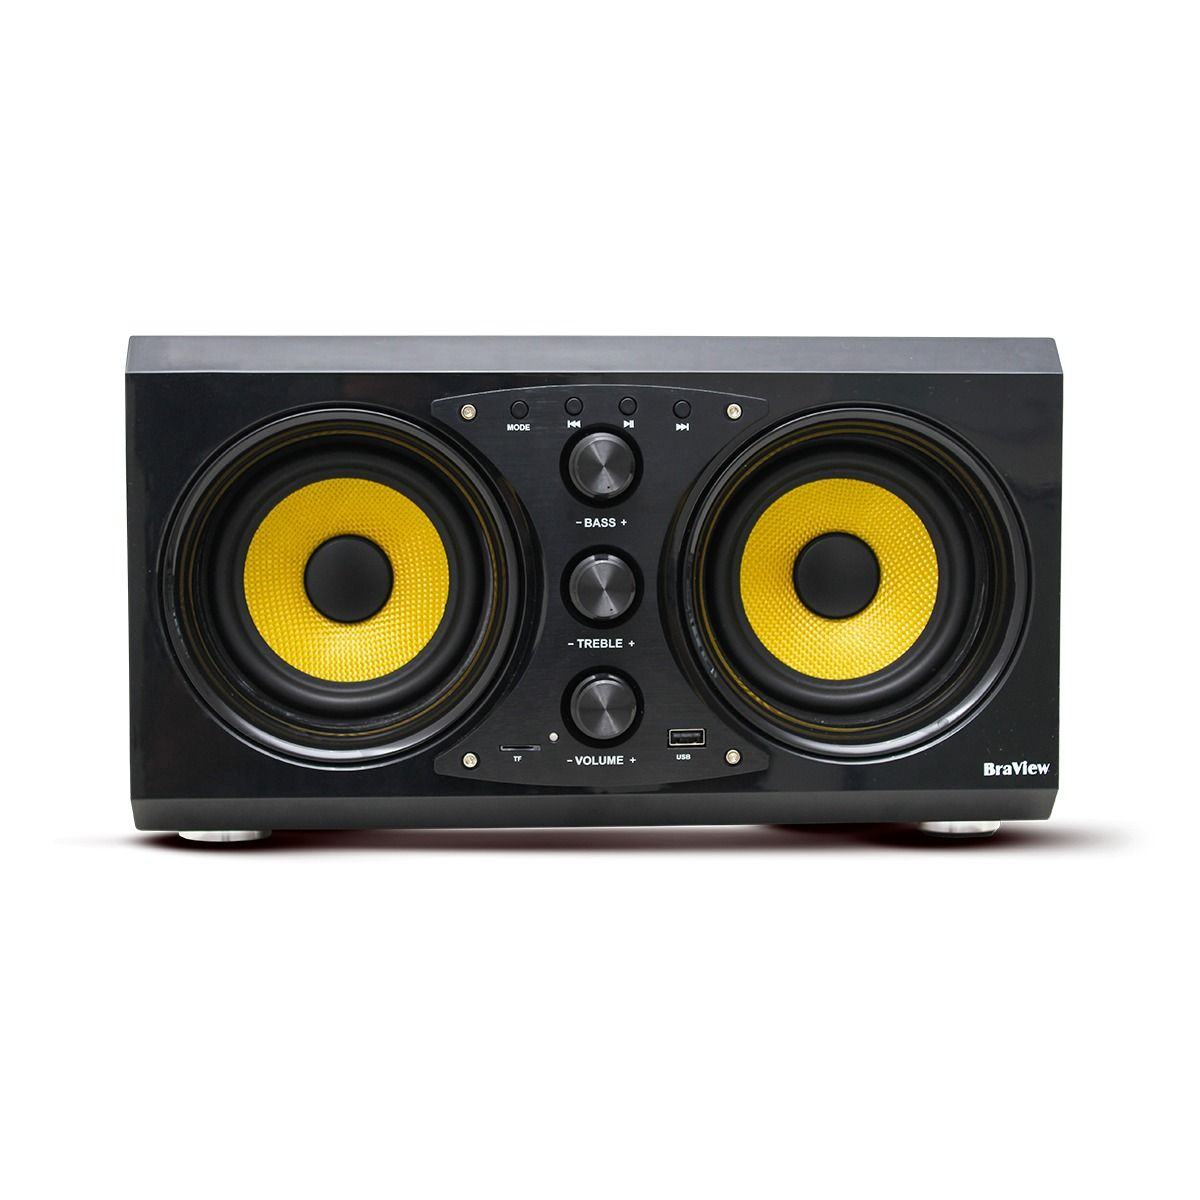 Caixa De Som Subwoofer 50w Aquarius Pro Sp-a50 Braview